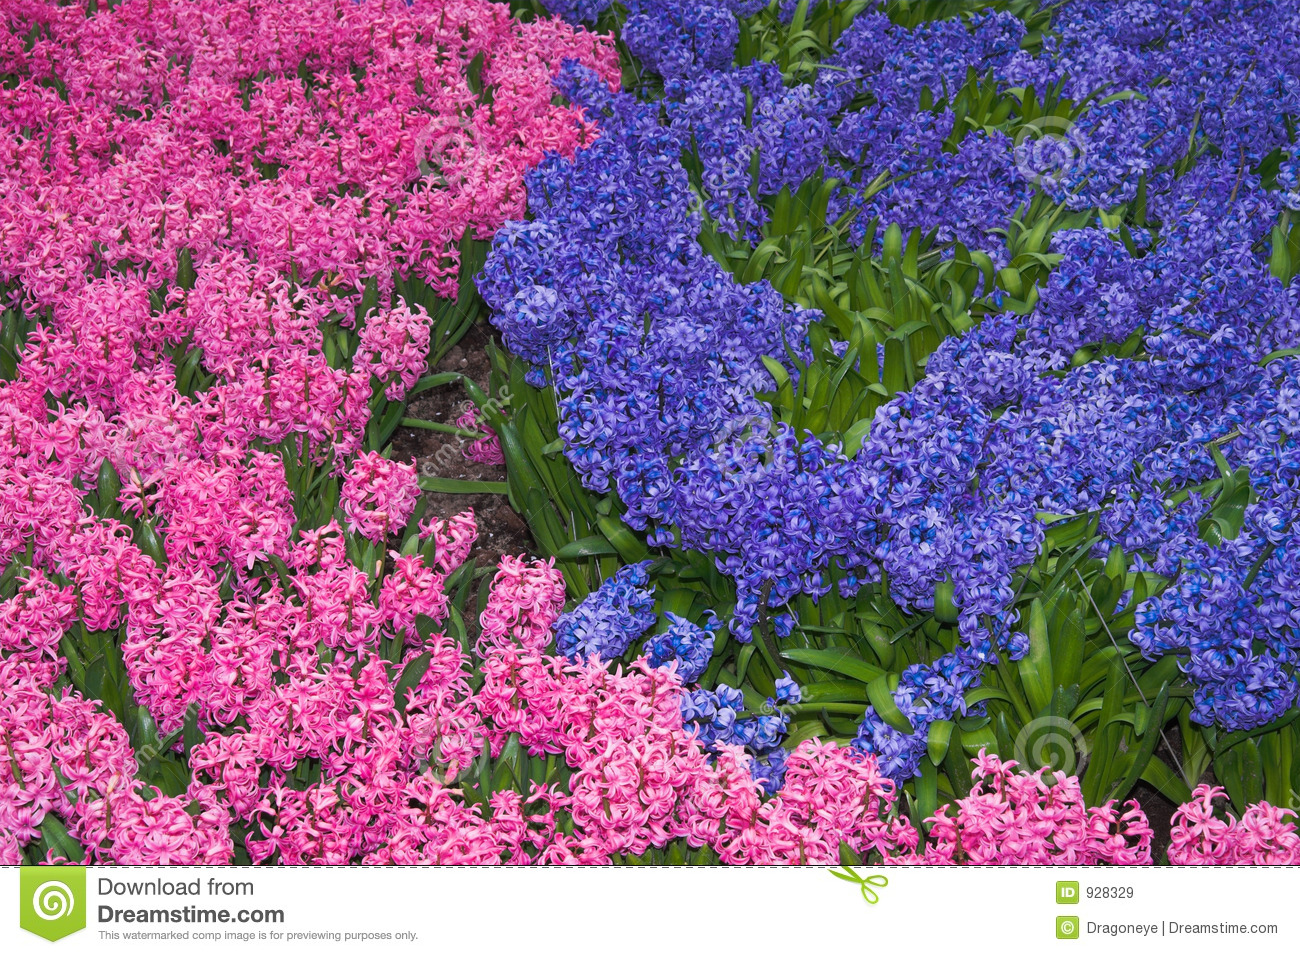 Parterre des jacinthes roses et lilas images libres de droits image 928329 for Parterre de roses photos